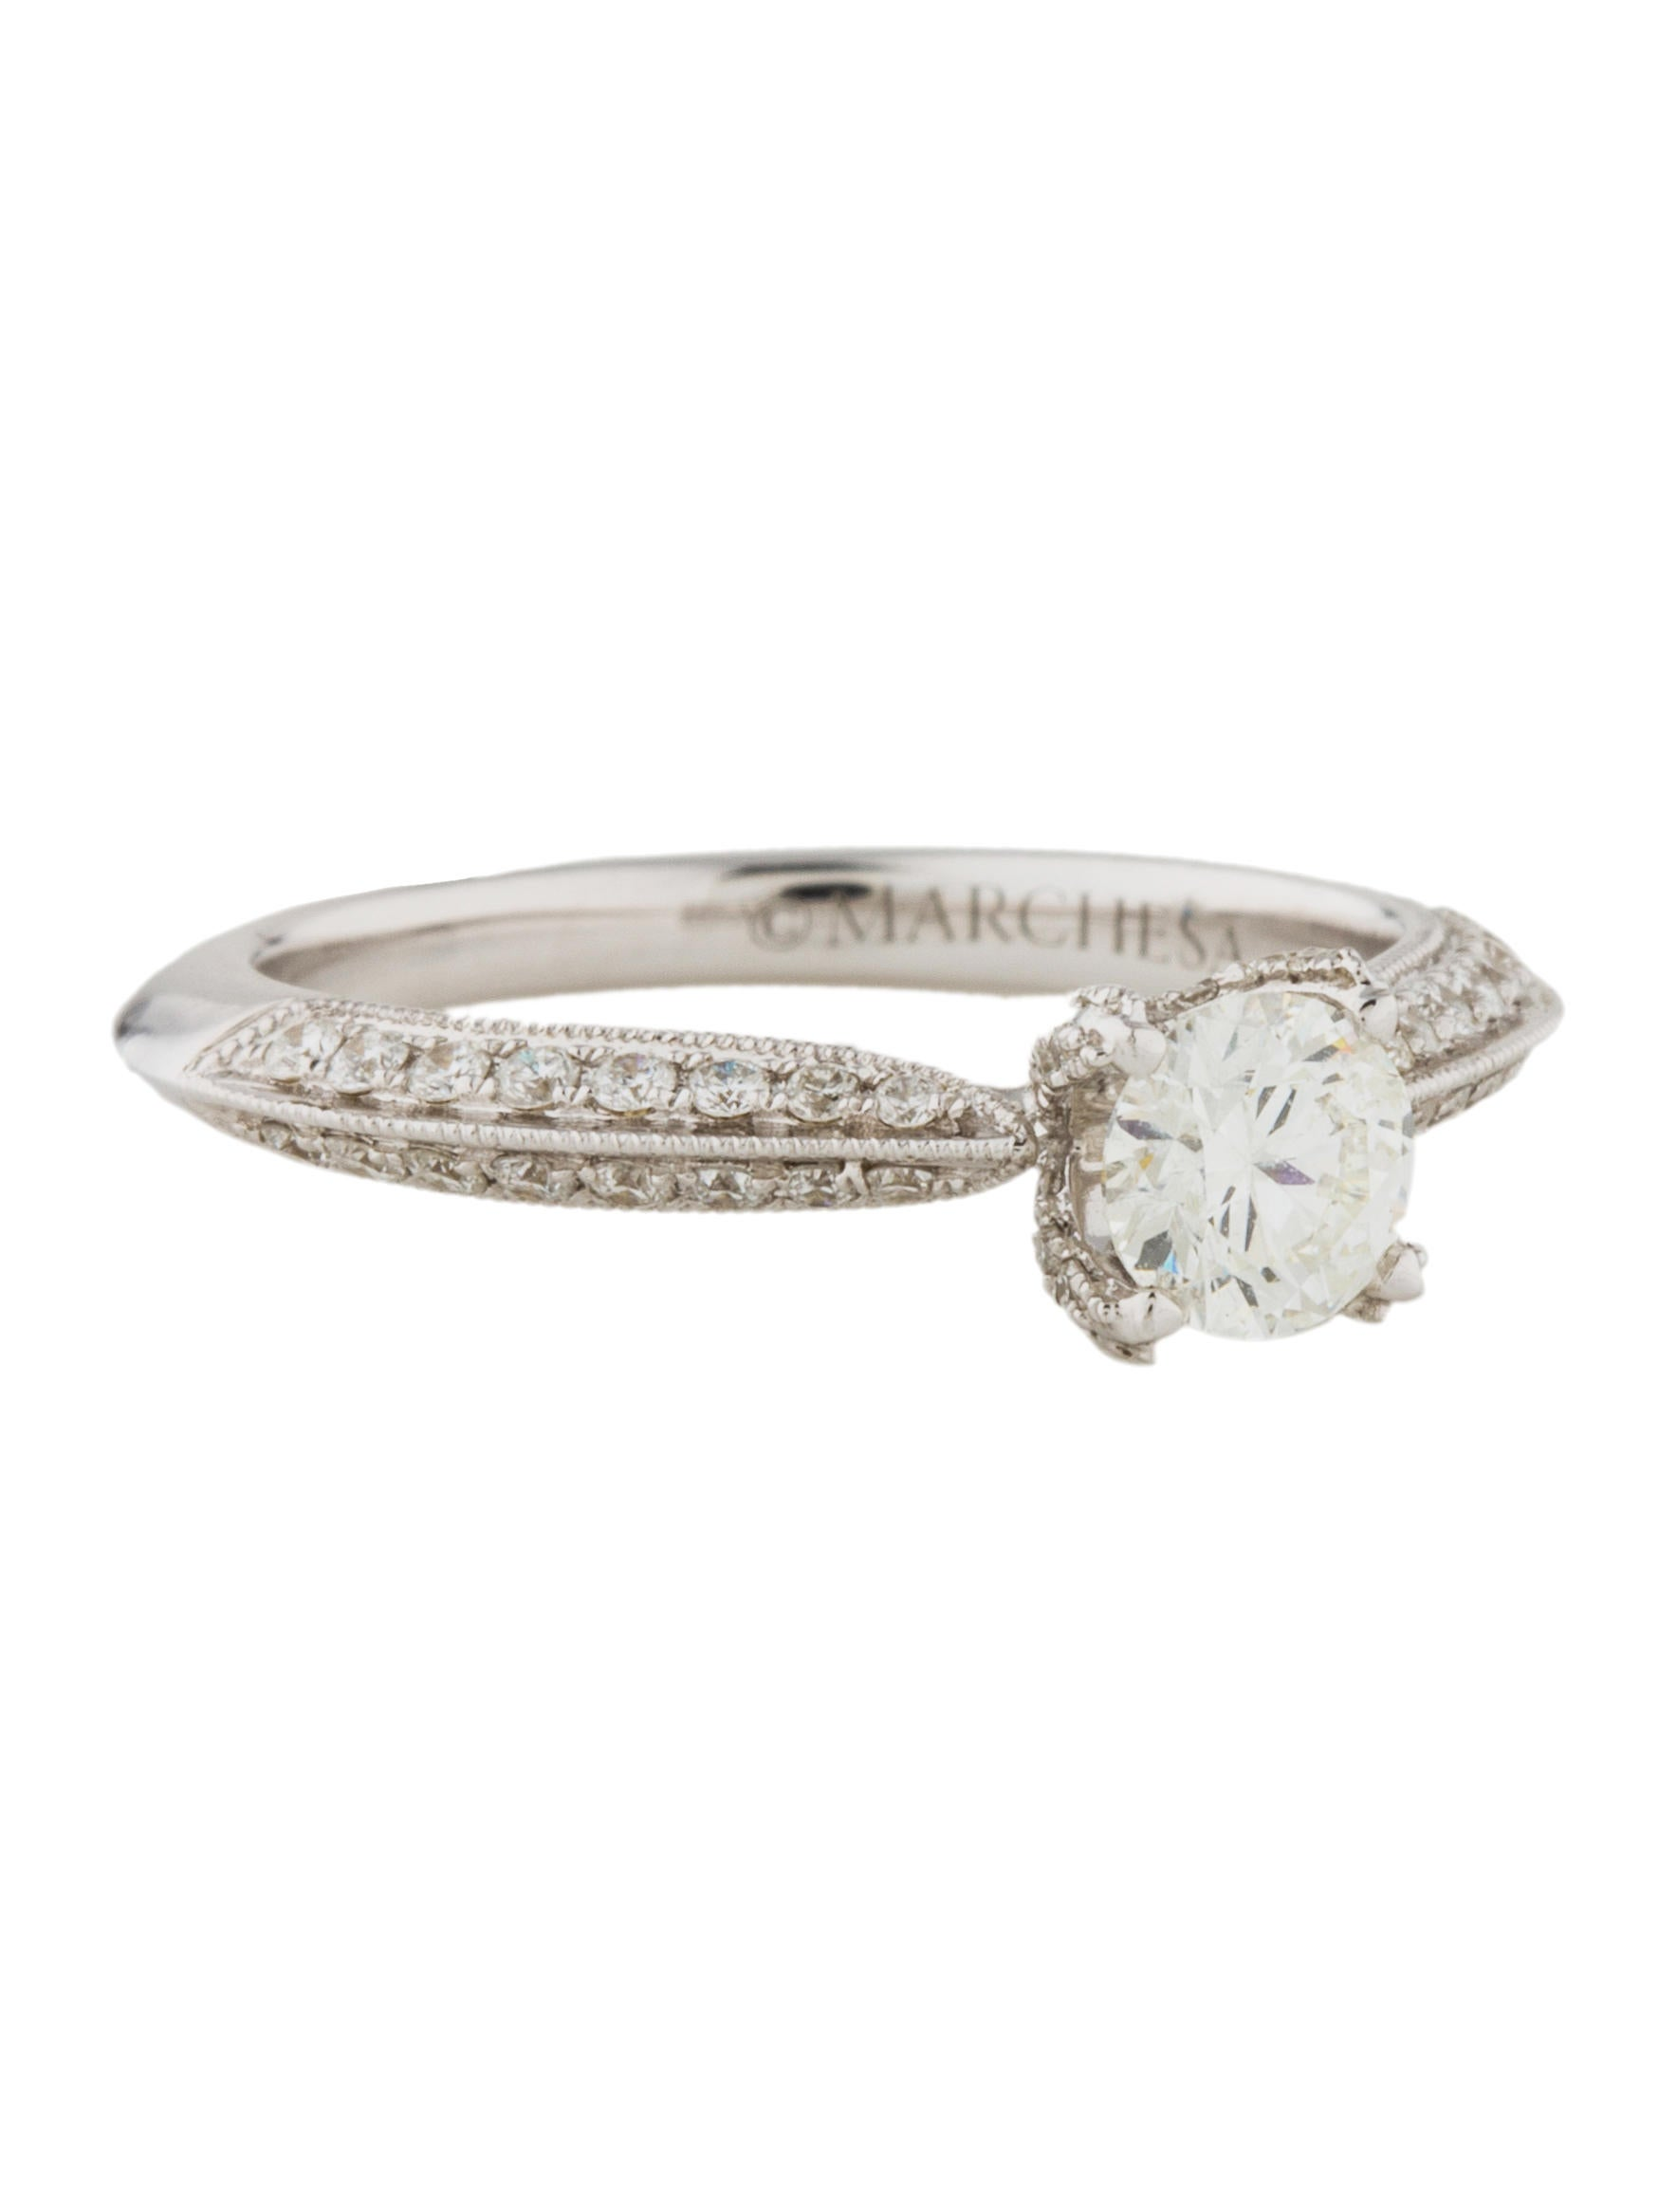 Marchesa Diamond Engagement Ring Rings MAC20986 The RealReal